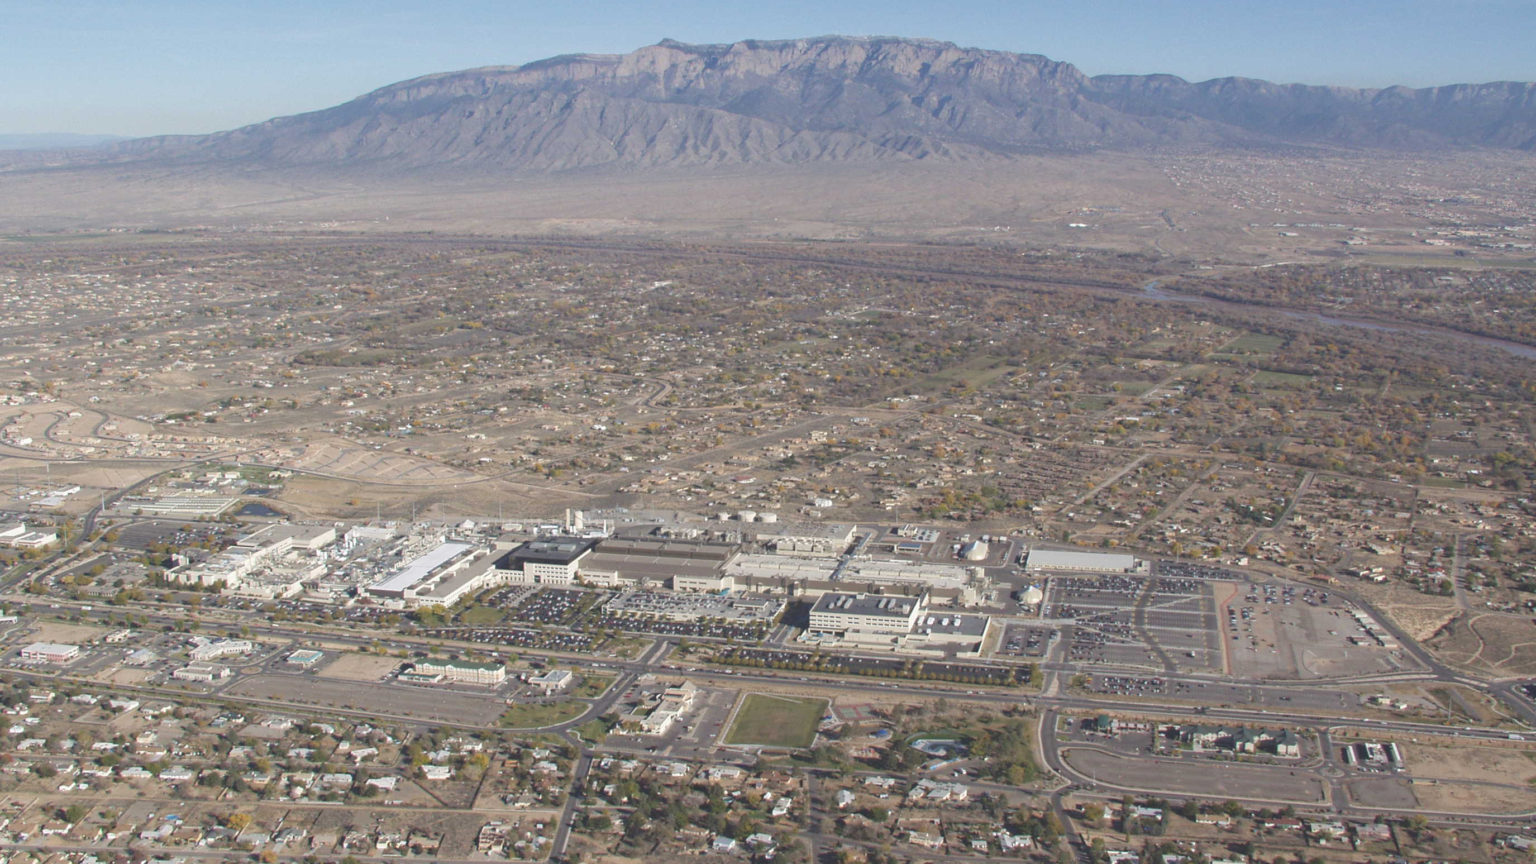 An aerial view shows the Intel Rio Rancho campus in New Mexico,